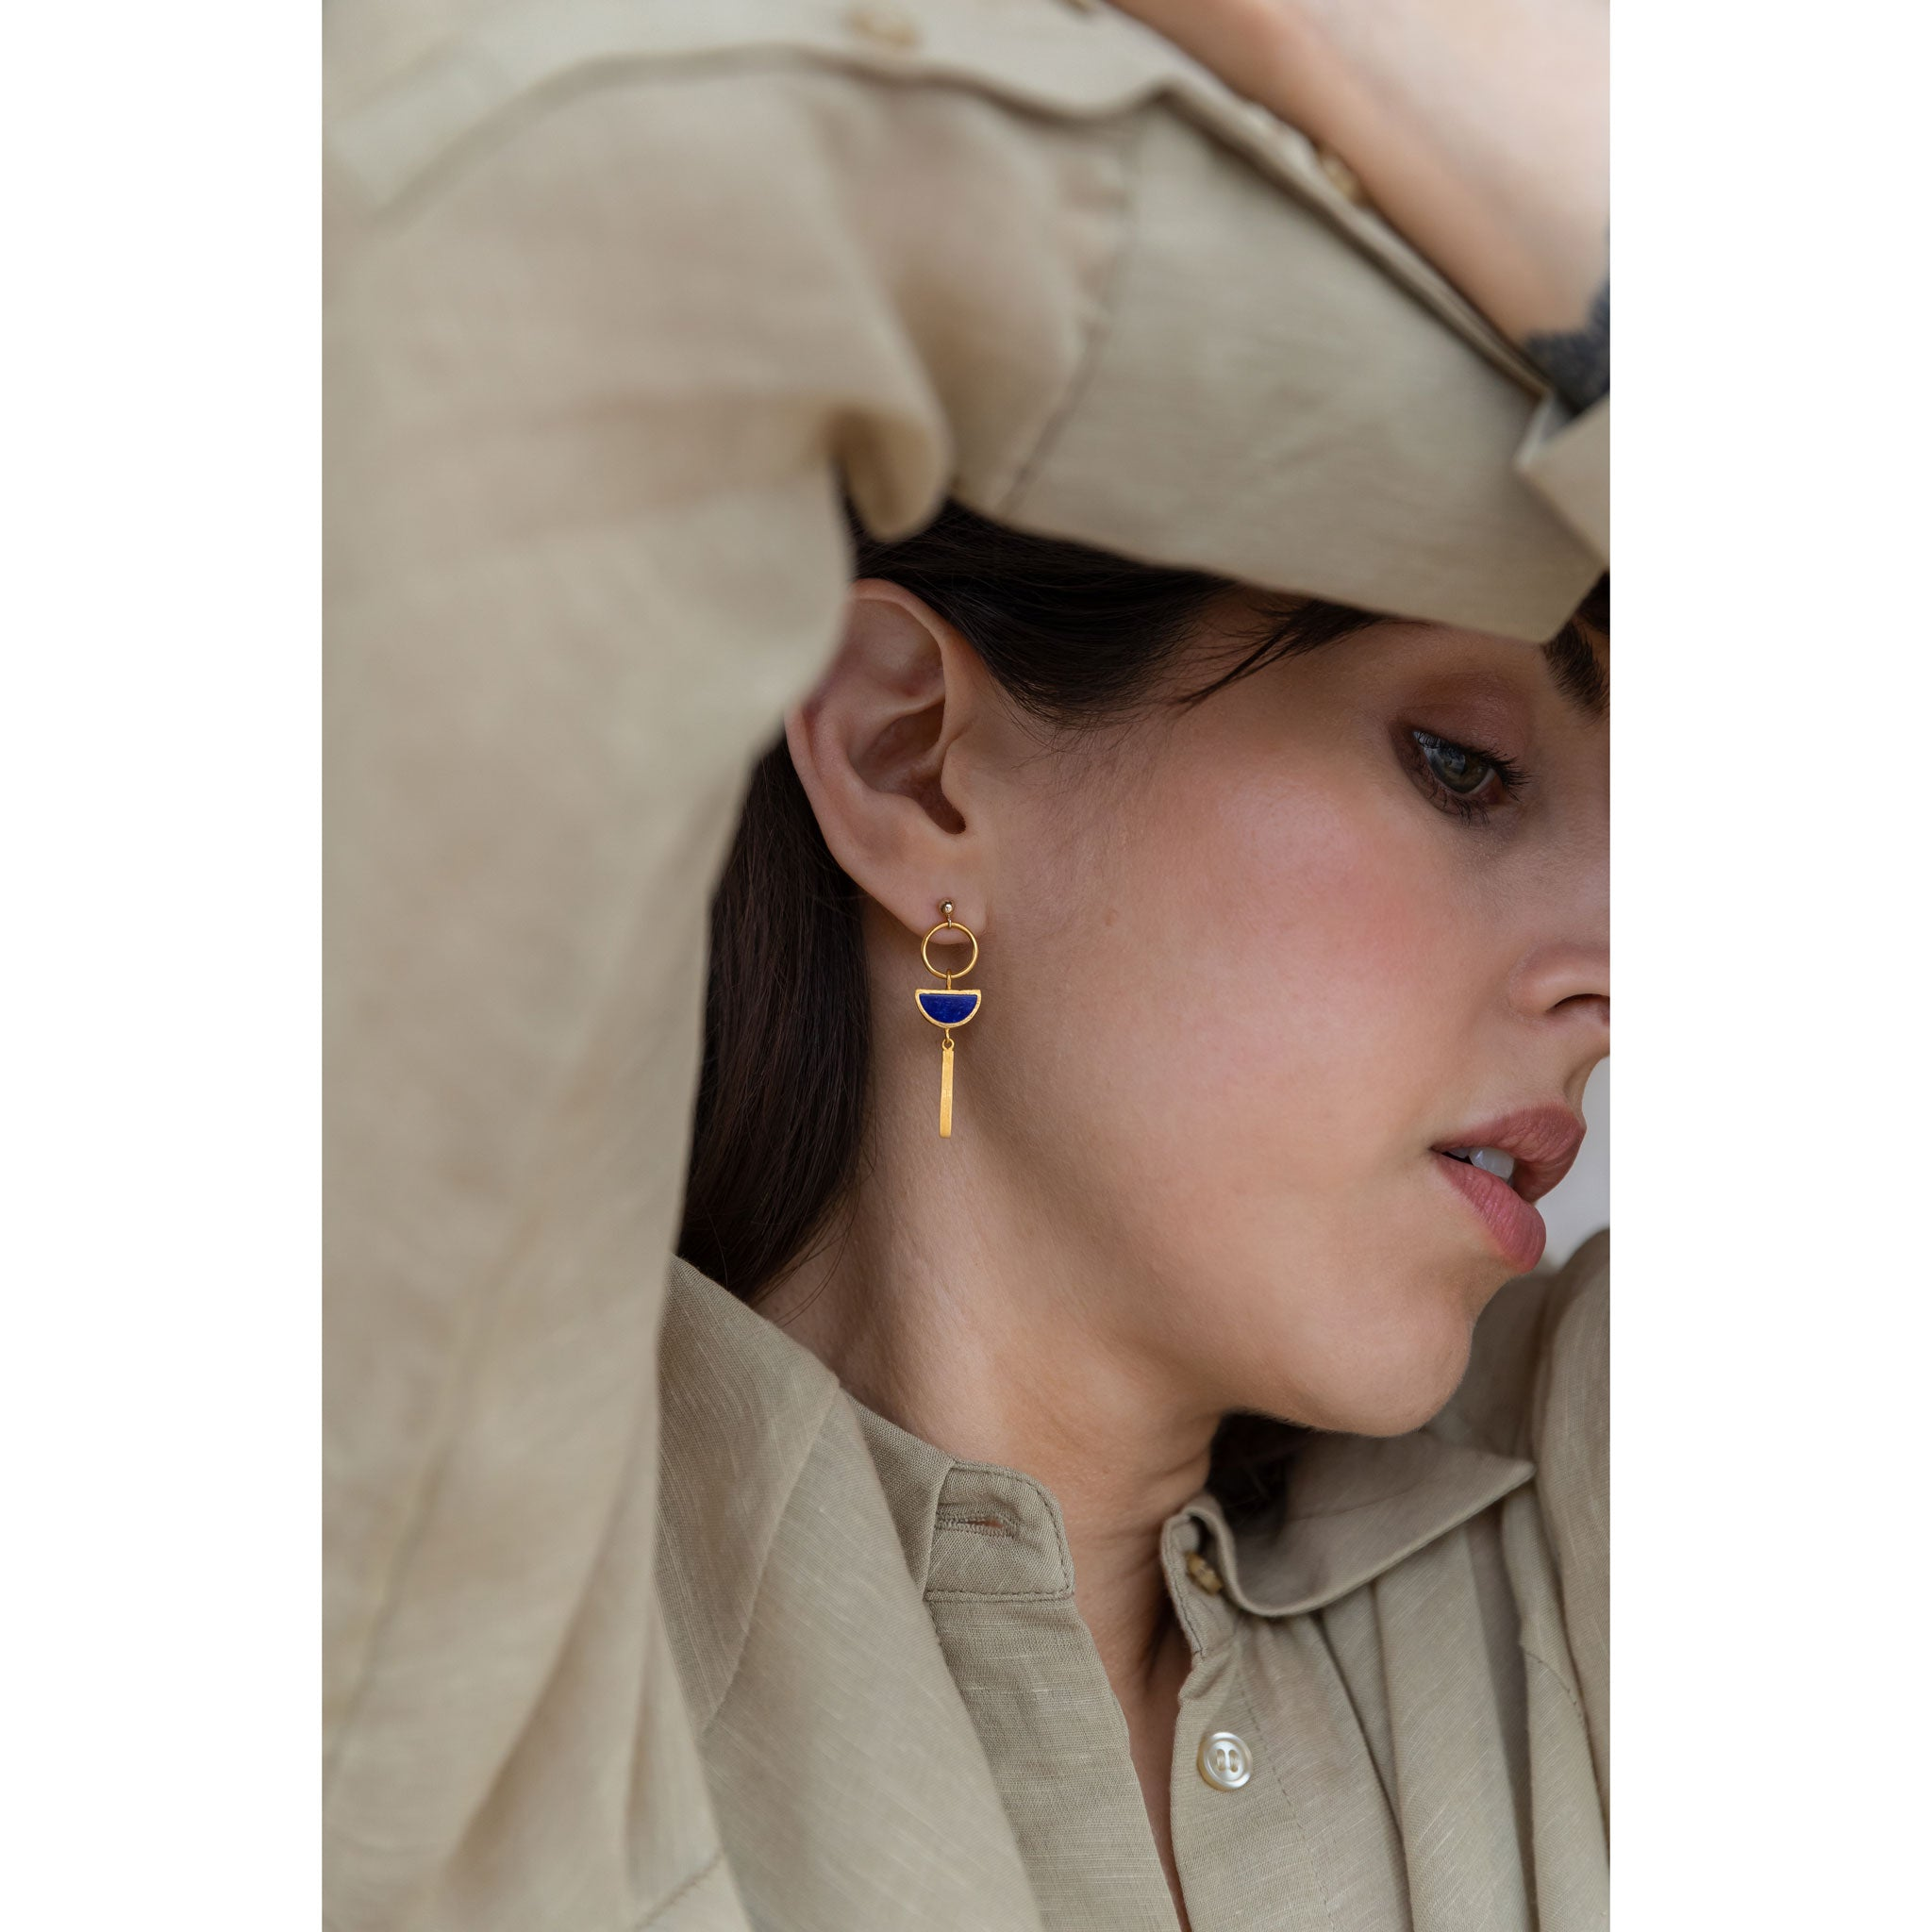 Wanderlust Life Ethically Handmade jewellery made in the UK. Minimalist gold and fine cord jewellery. sunburst drop earring, lapis lazuli